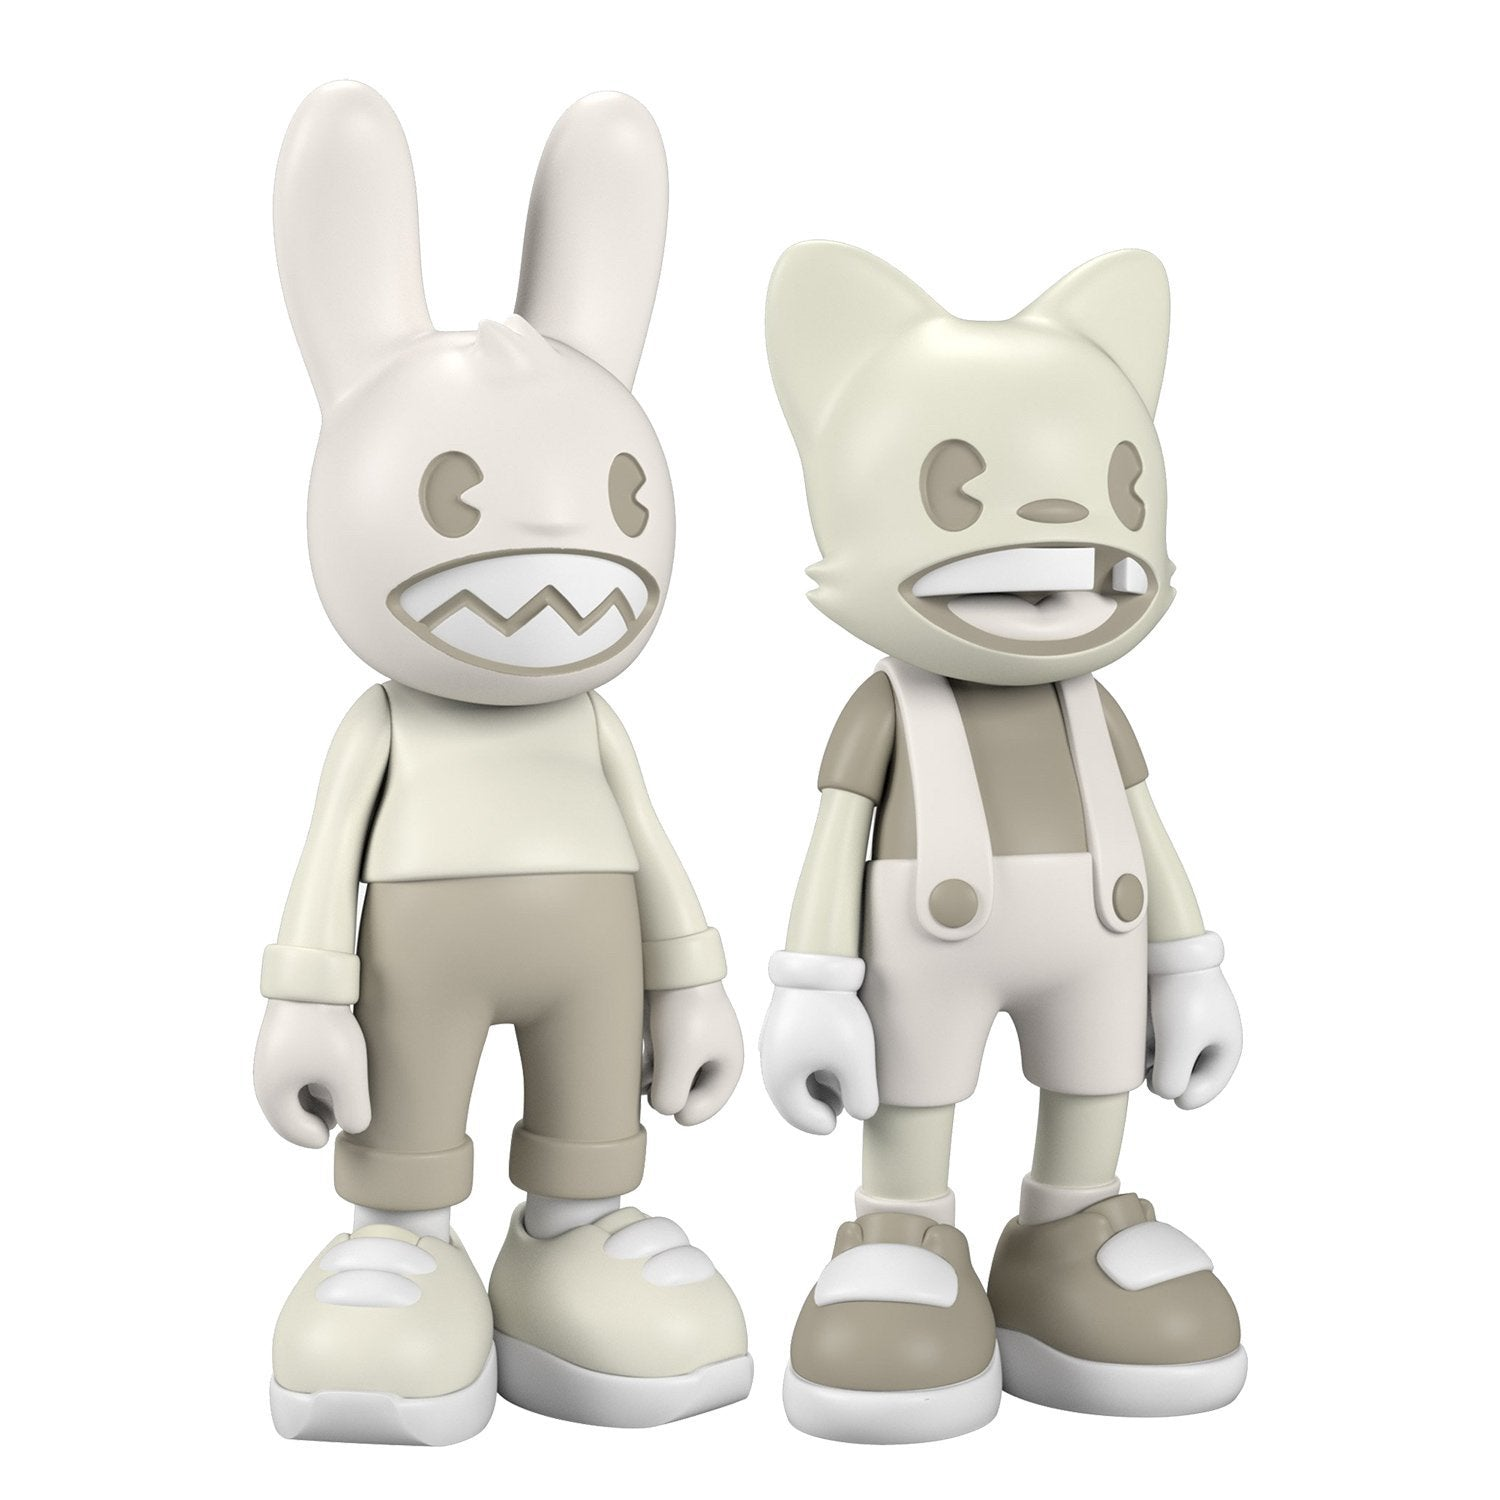 "Lil' Helpers Glow Janky & Guggimon Set of 14"" Vinyl Figures by Superplastic 14-inch Vinyl Figure Superplastic"